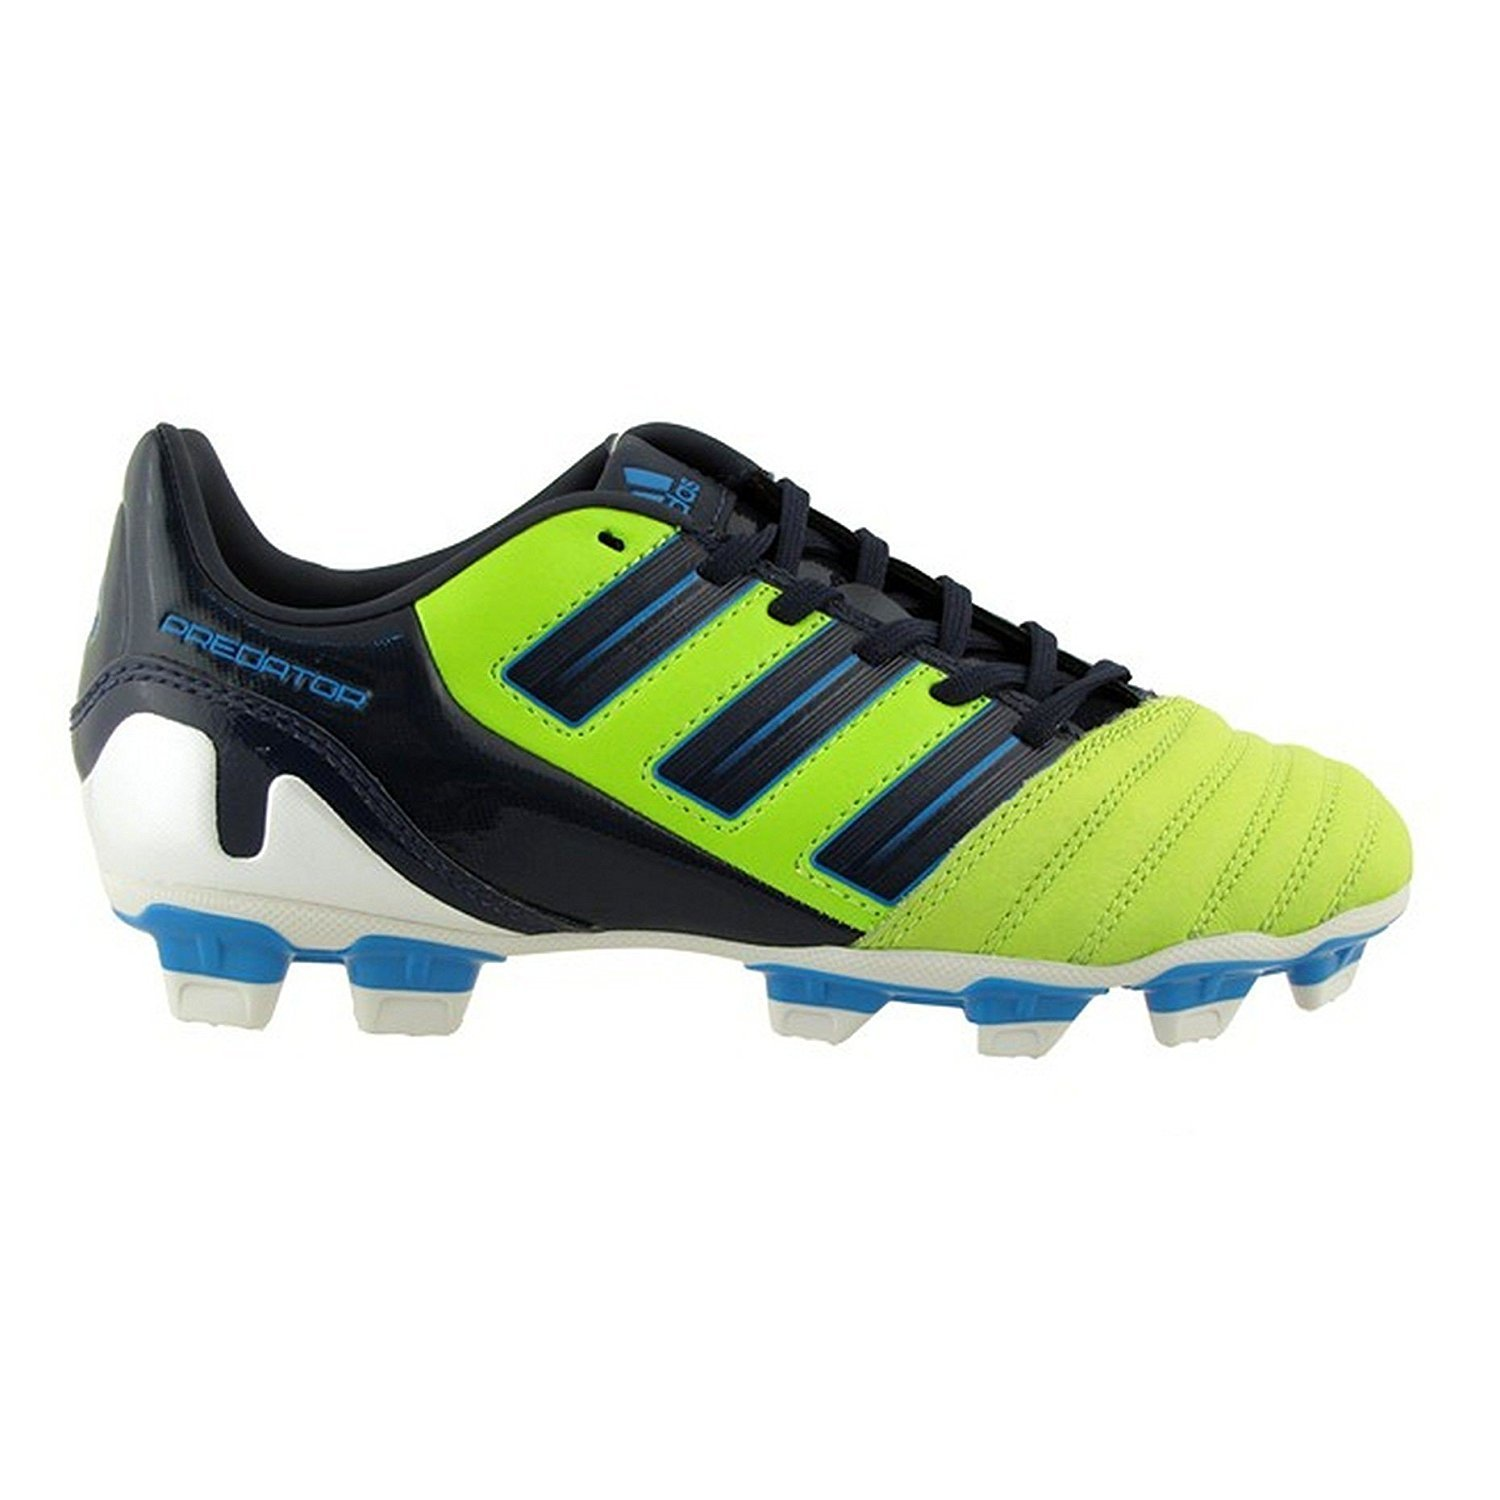 aeaea75ac Get Quotations · adidas PREDATOR JUNIOR Absolado TRX FG Soccer Cleats  (Slime Drkindigo Preshablu)